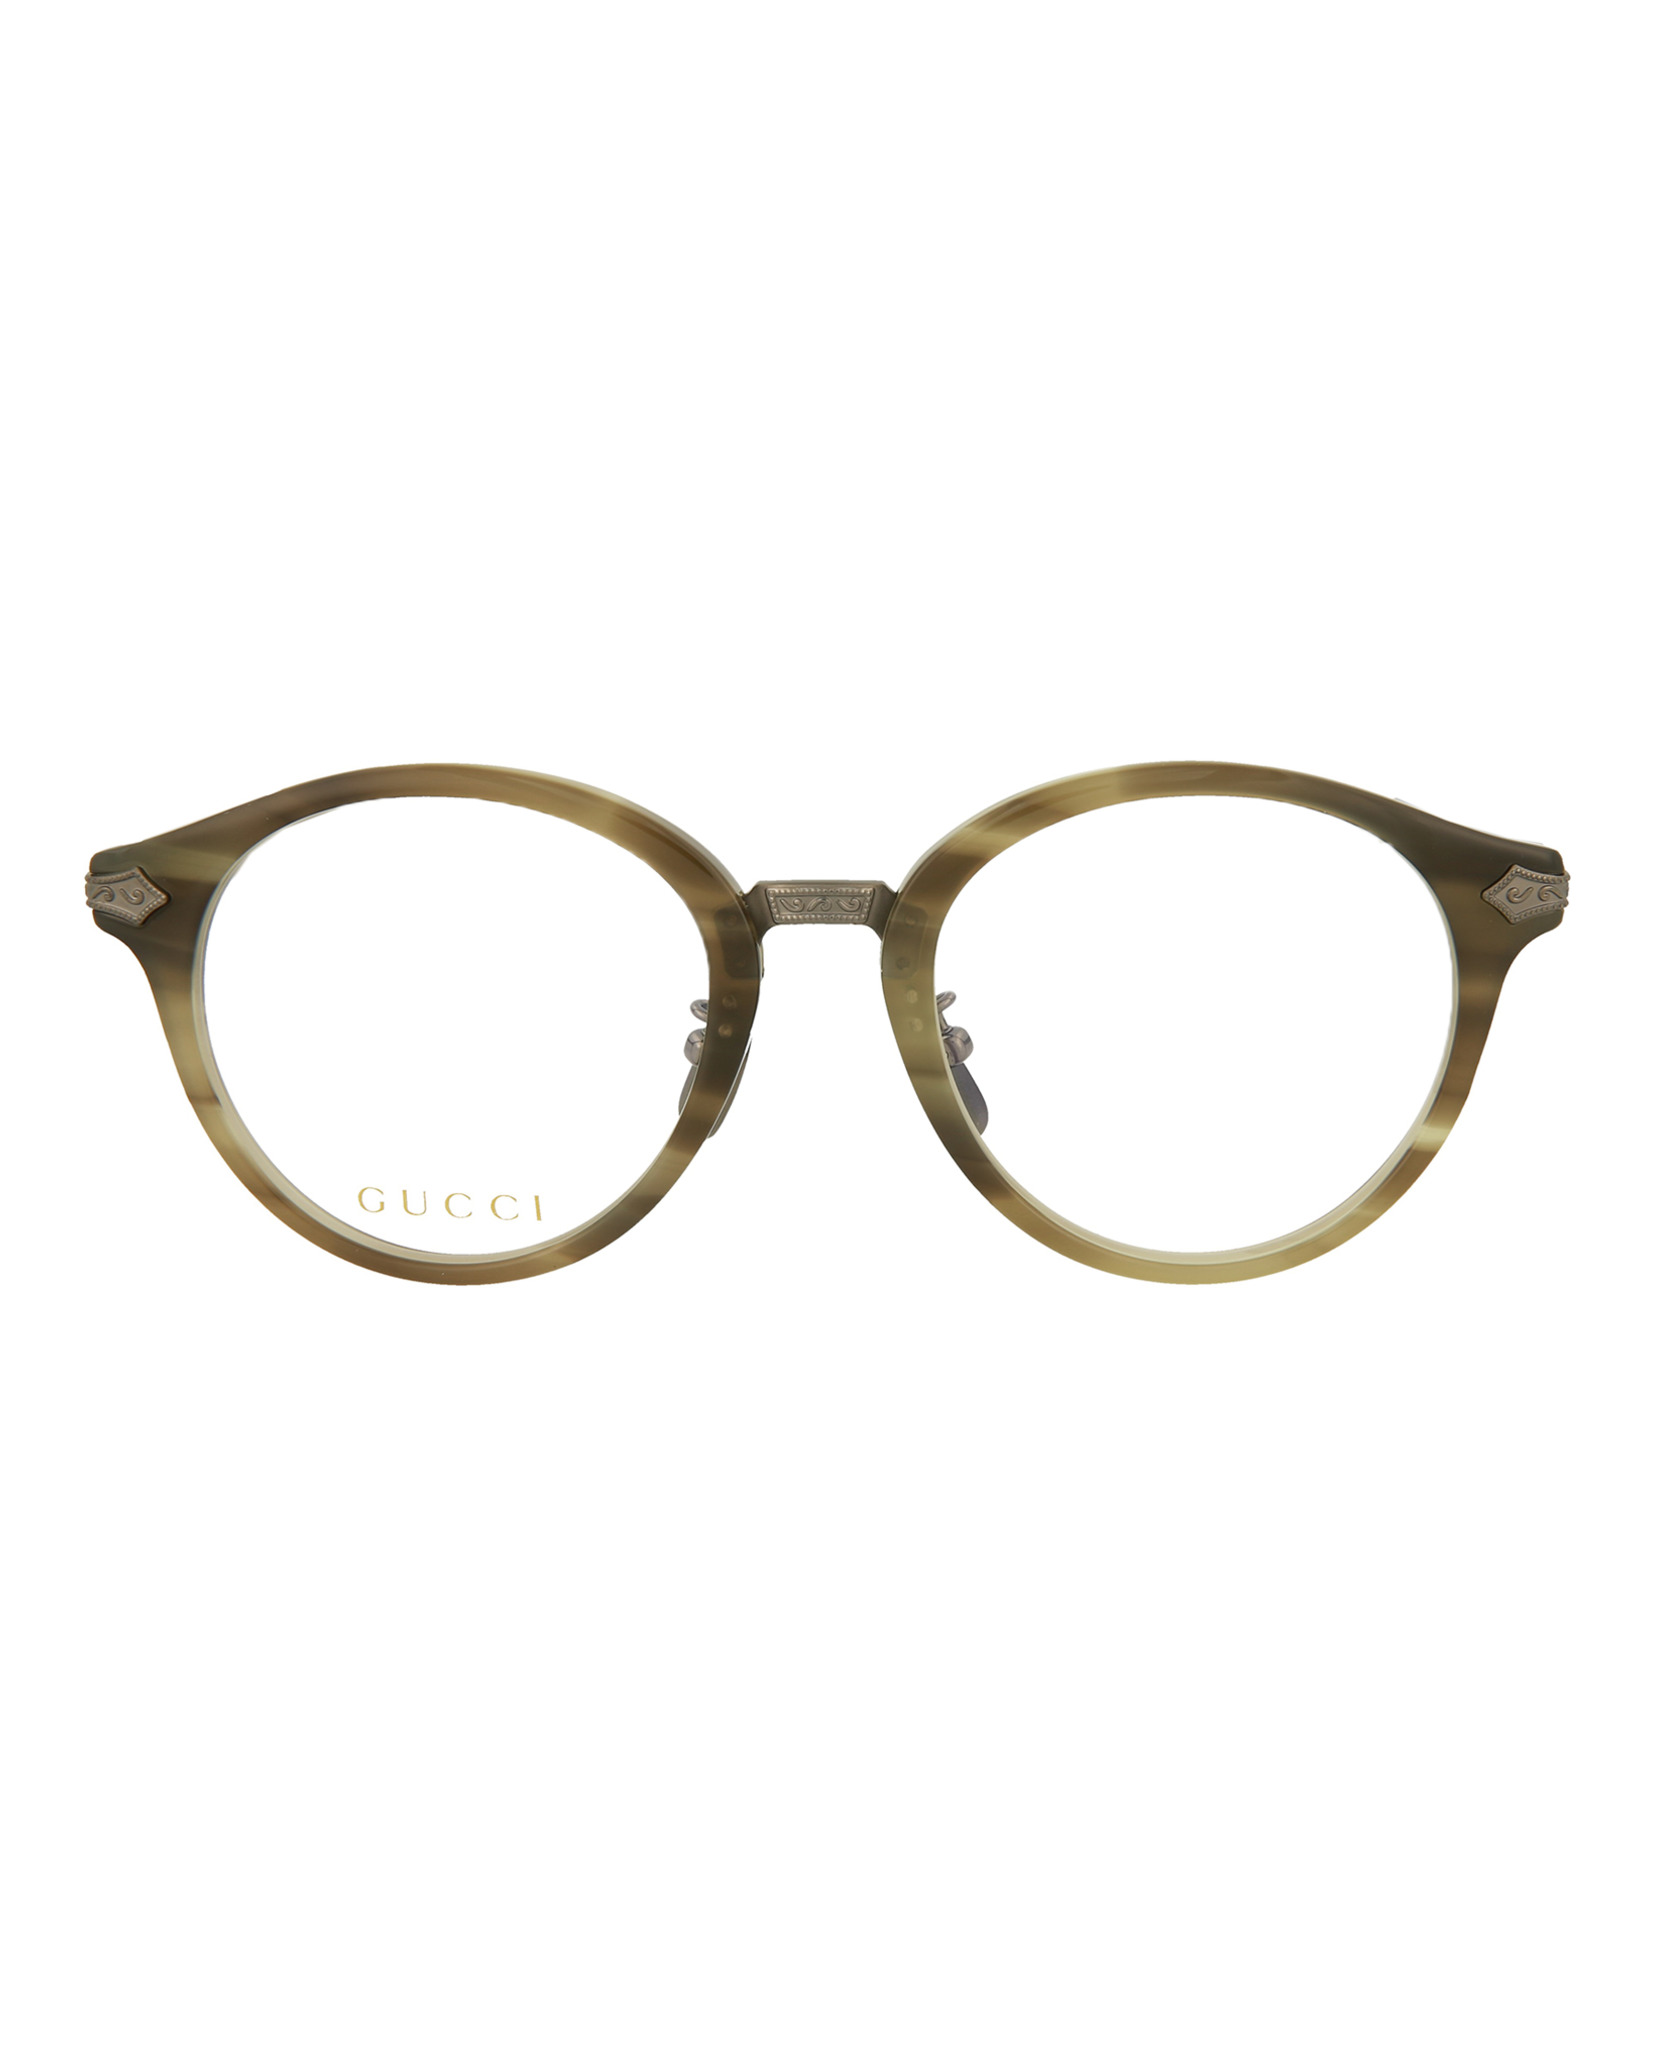 516efab6be Gucci Mens Round Oval Optical Frames GG0066O-30001061-003 ...